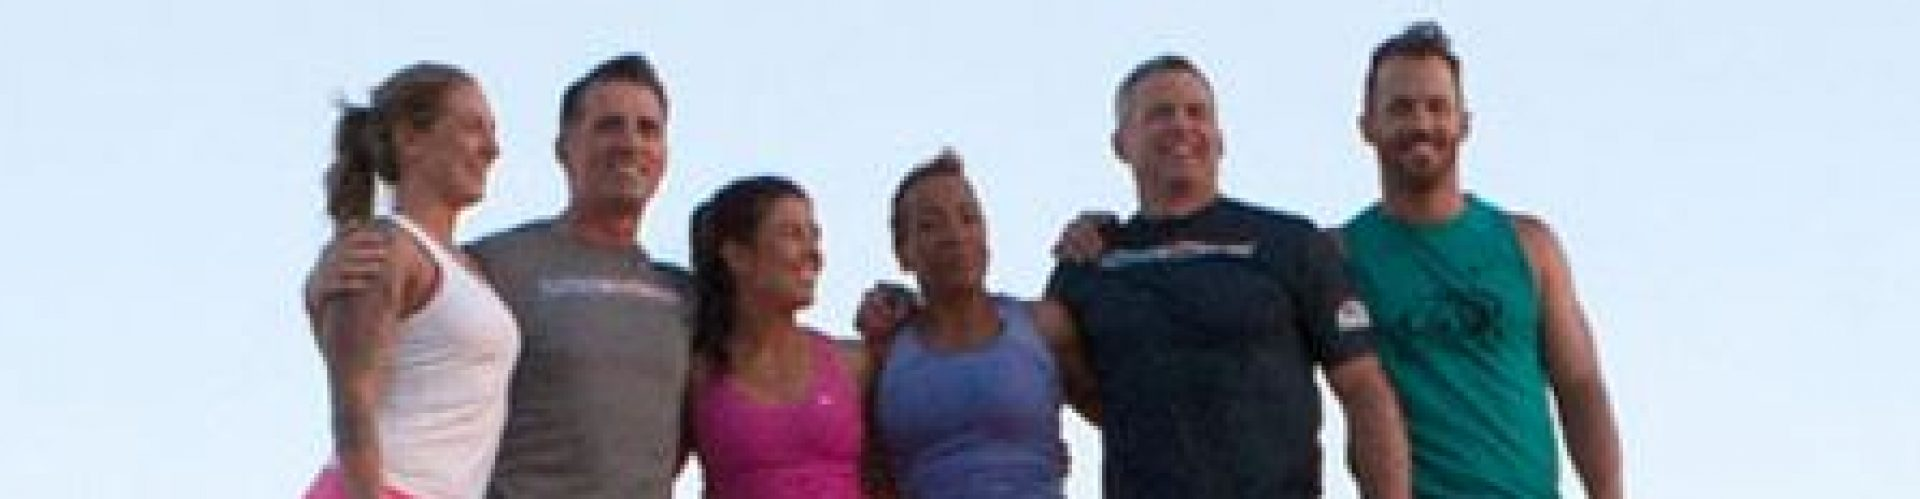 http://ilovedjheather.com/wp-content/uploads/2020/09/cropped-better-together.jpg